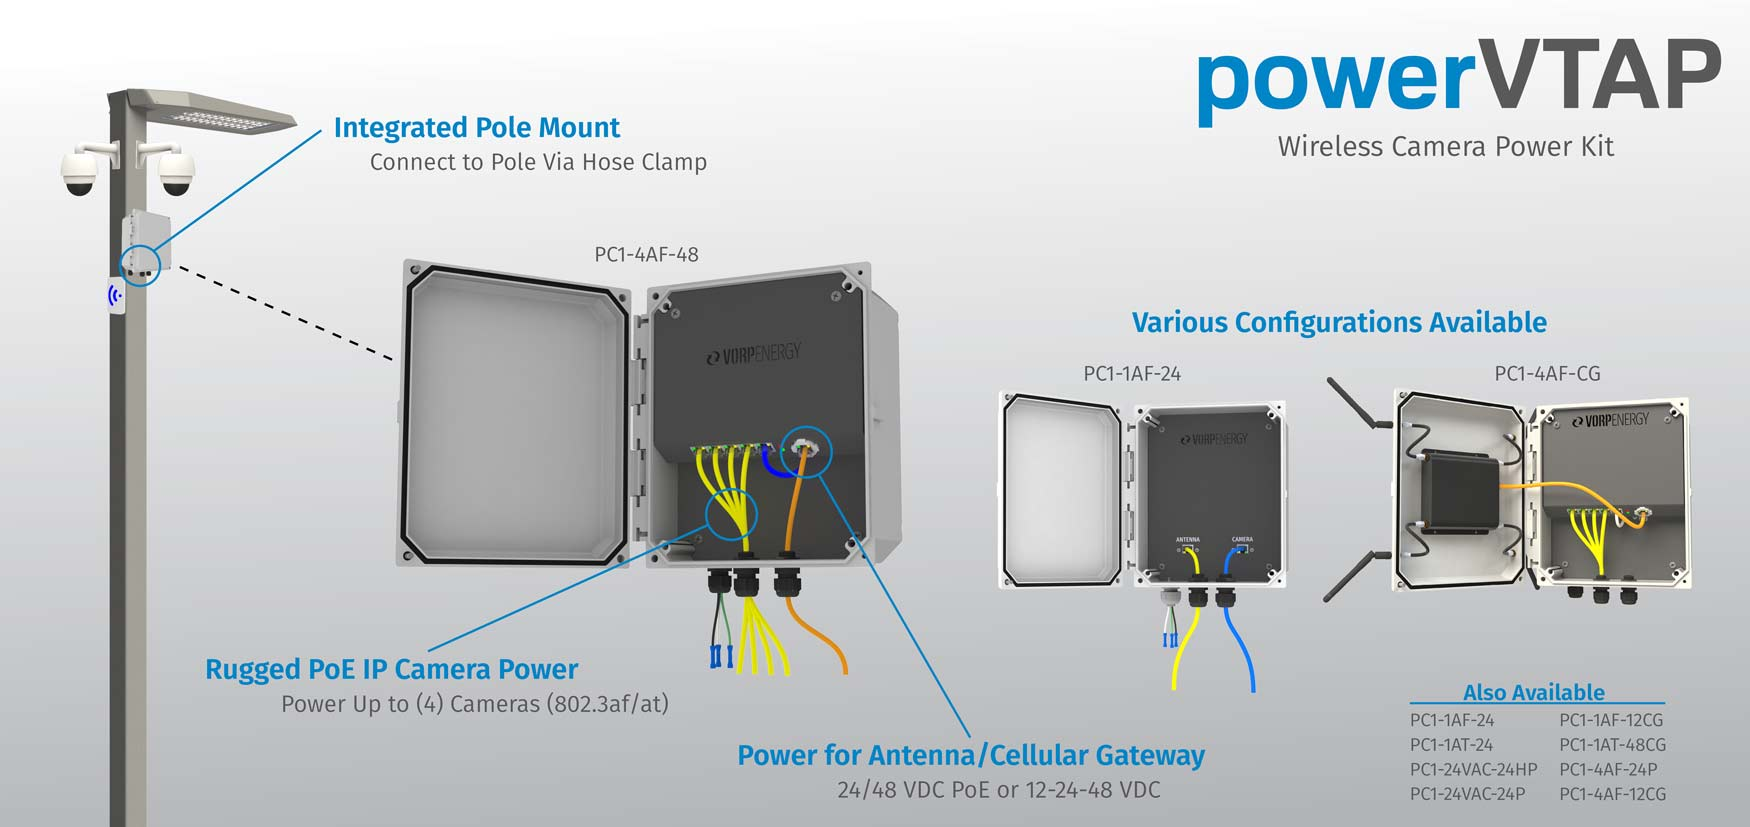 Quick & Easy Light Pole AC to PoE Power Conversion for Surveillance & Communication